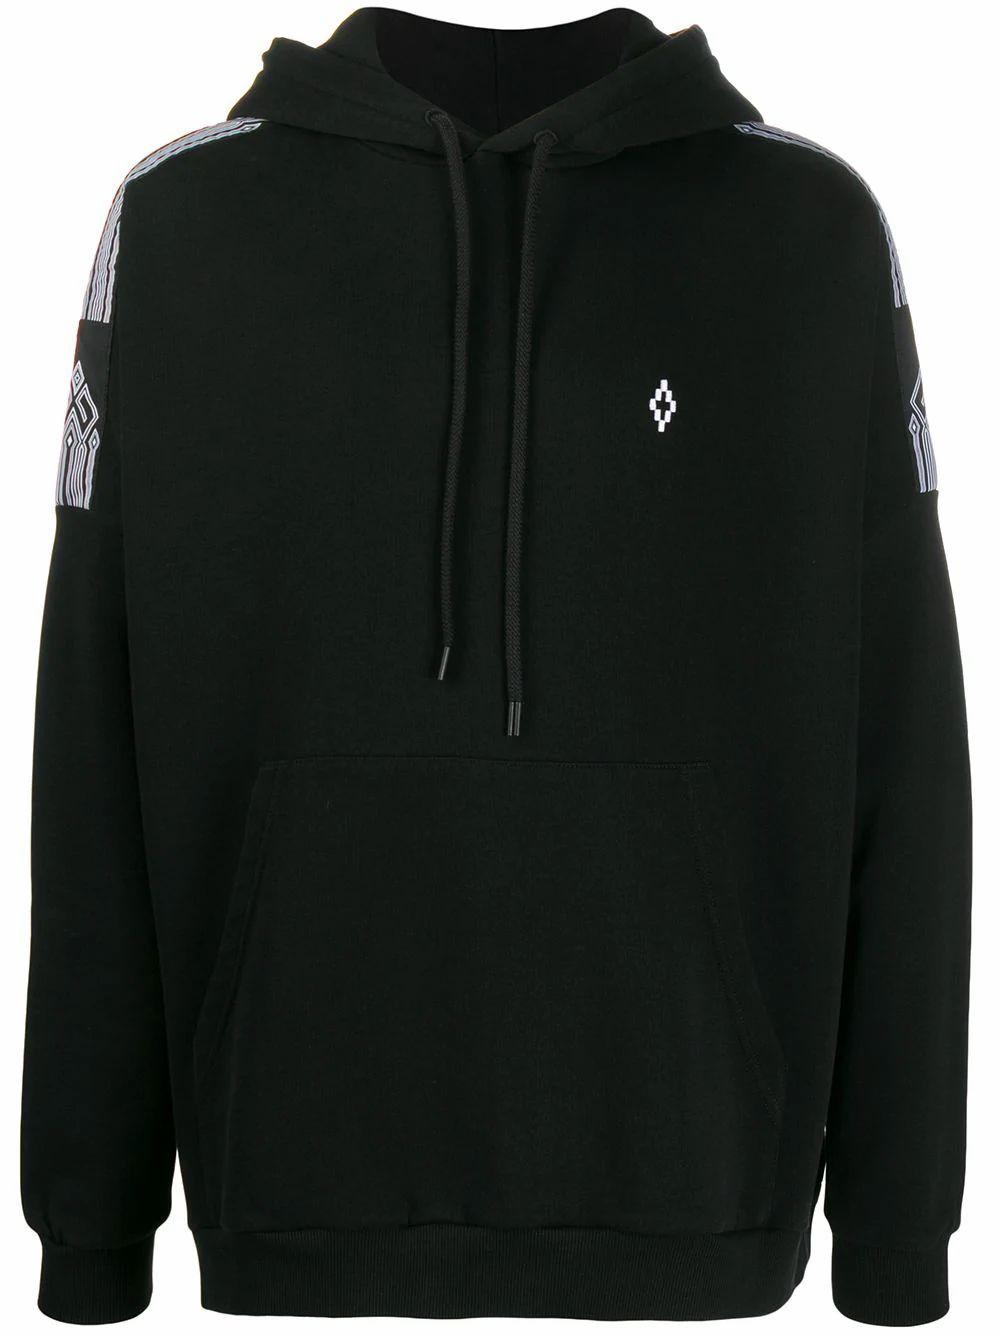 Marcelo Burlon County Of Milan MARCELO BURLON MEN'S BLACK COTTON SWEATSHIRT